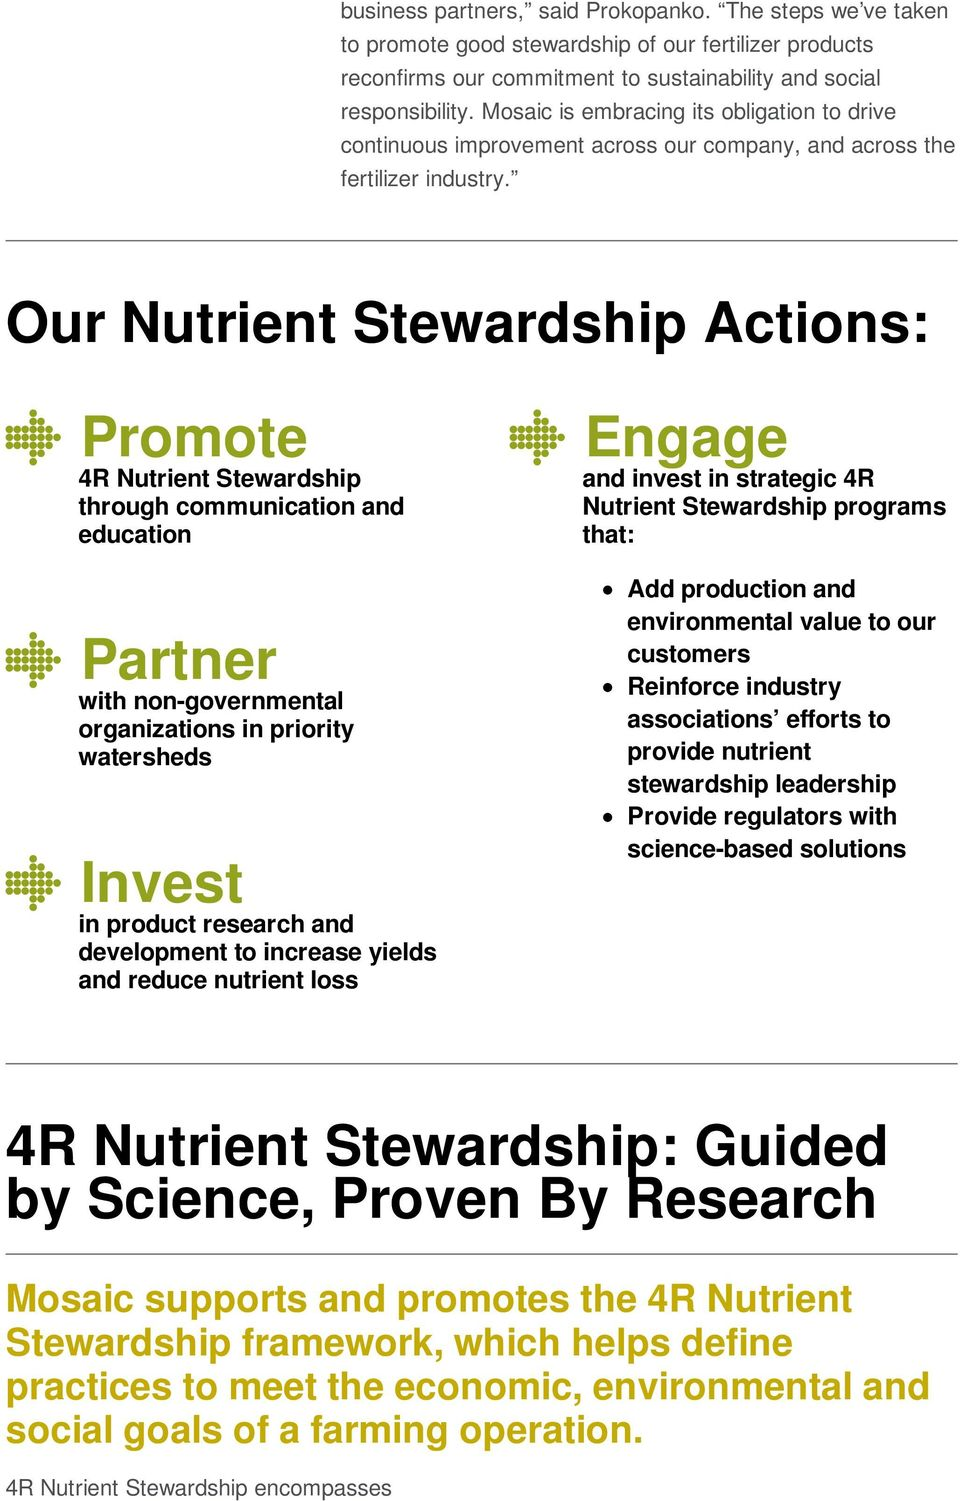 Our Nutrient Stewardship Actions: Promote 4R Nutrient Stewardship through communication and education Engage and invest in strategic 4R Nutrient Stewardship programs that: Partner with